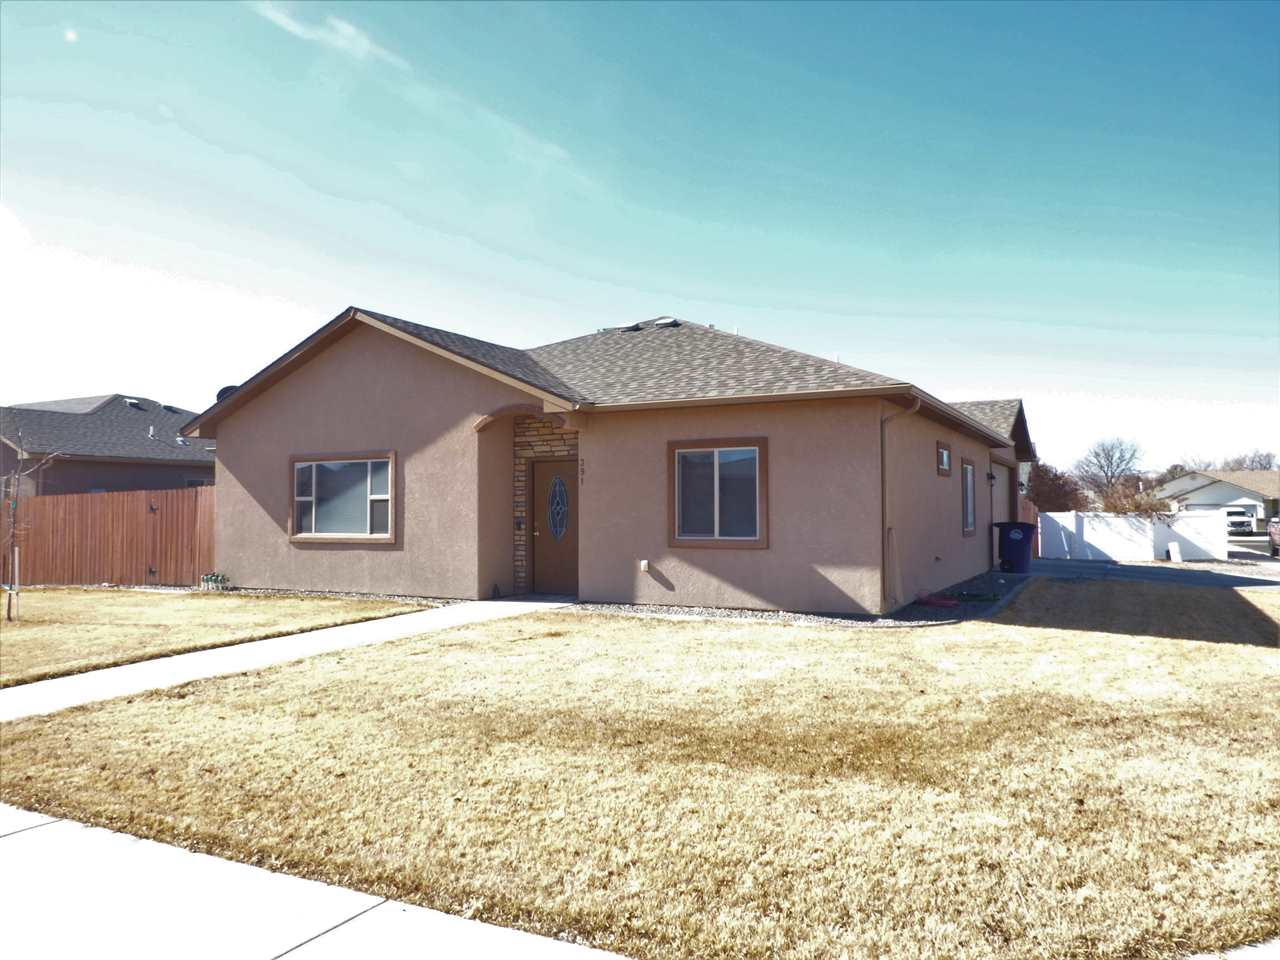 391 Rosemary Way, Grand Junction, CO 81501